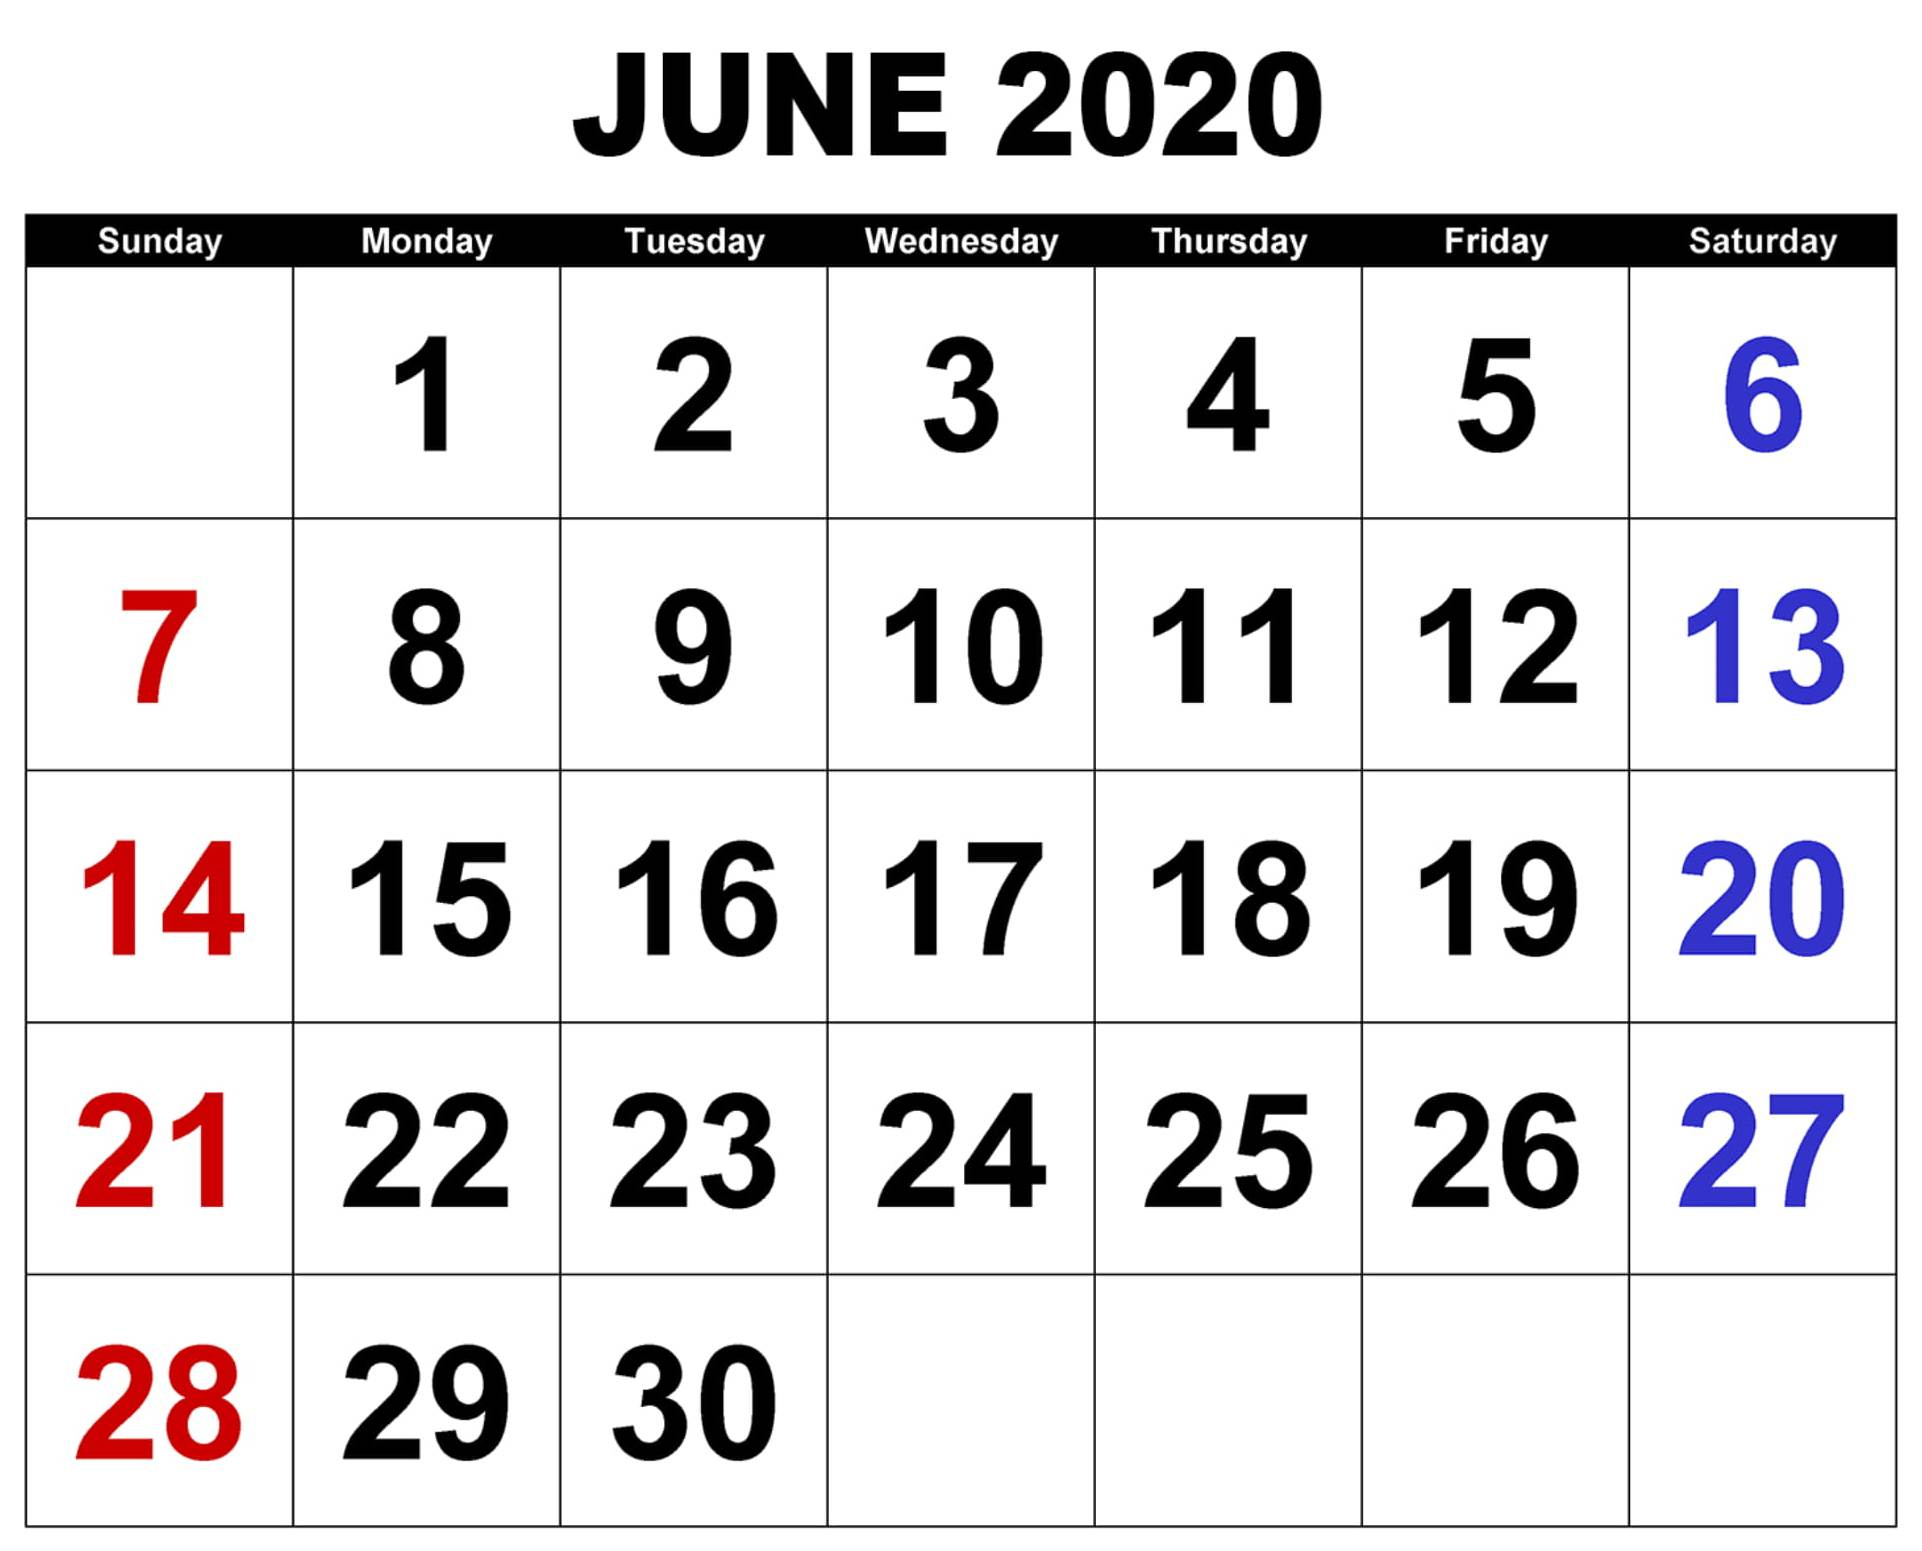 June 2020 Big Dates Calendar